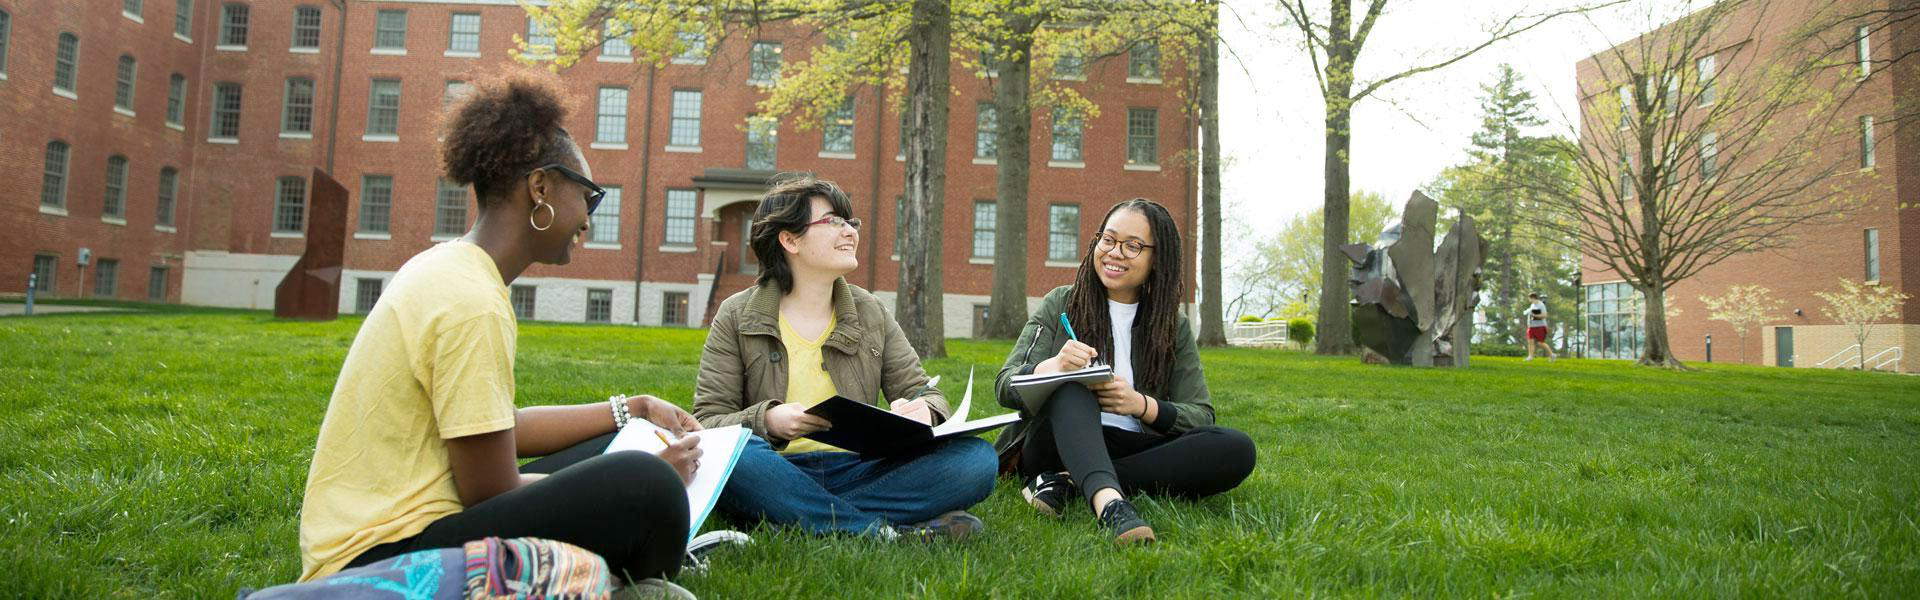 three students sitting on a lawn talking to eachother